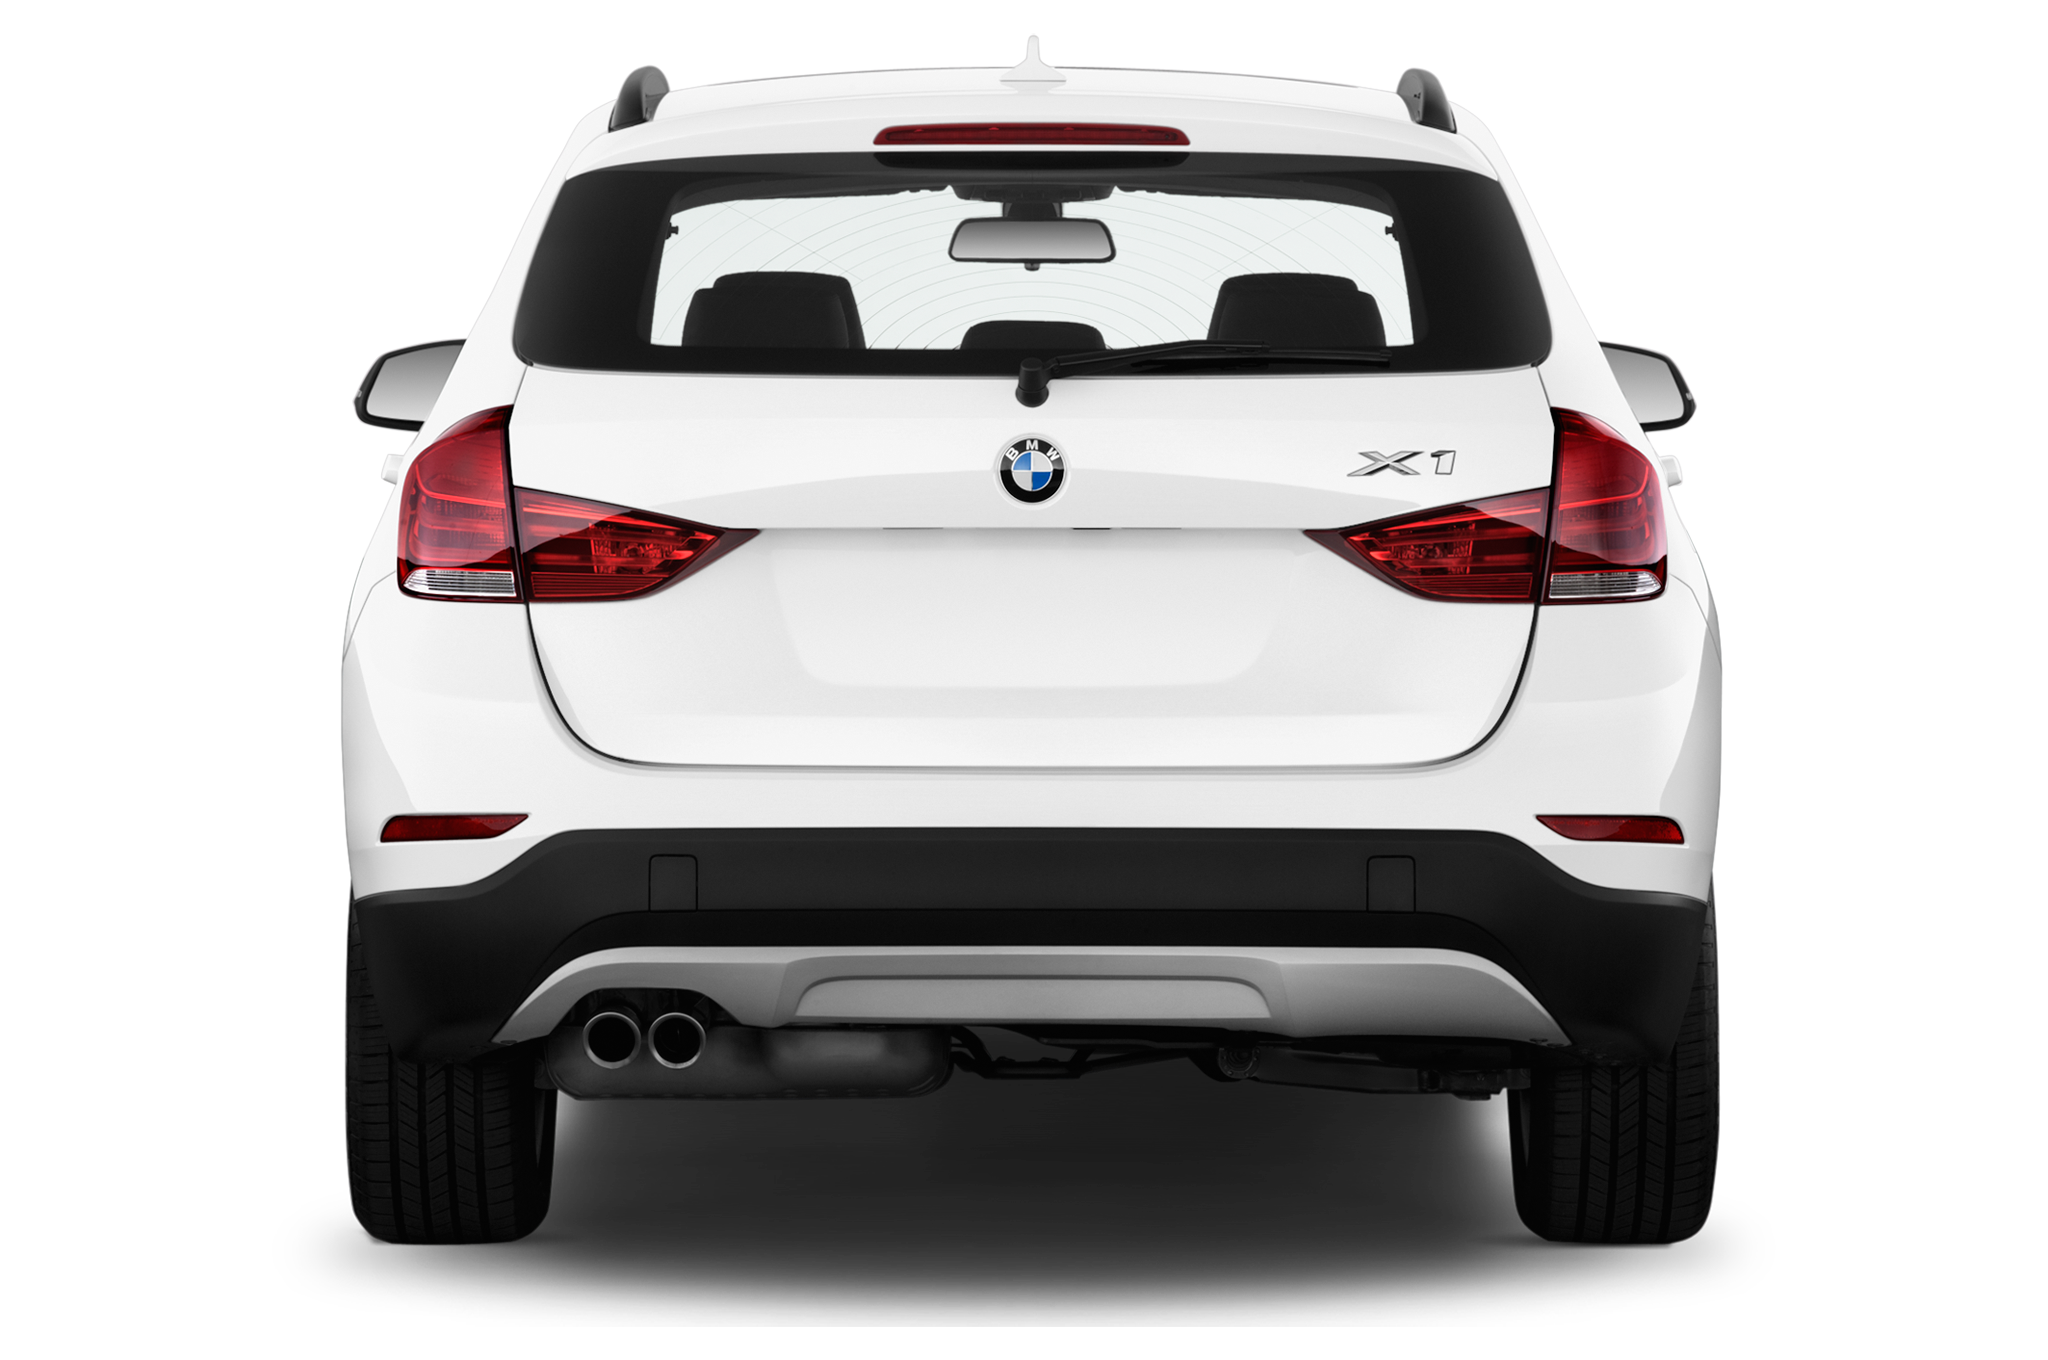 Rear view of car clipart picture library stock Bmw X1 xDrive28i 2014 - International Price & Overview picture library stock